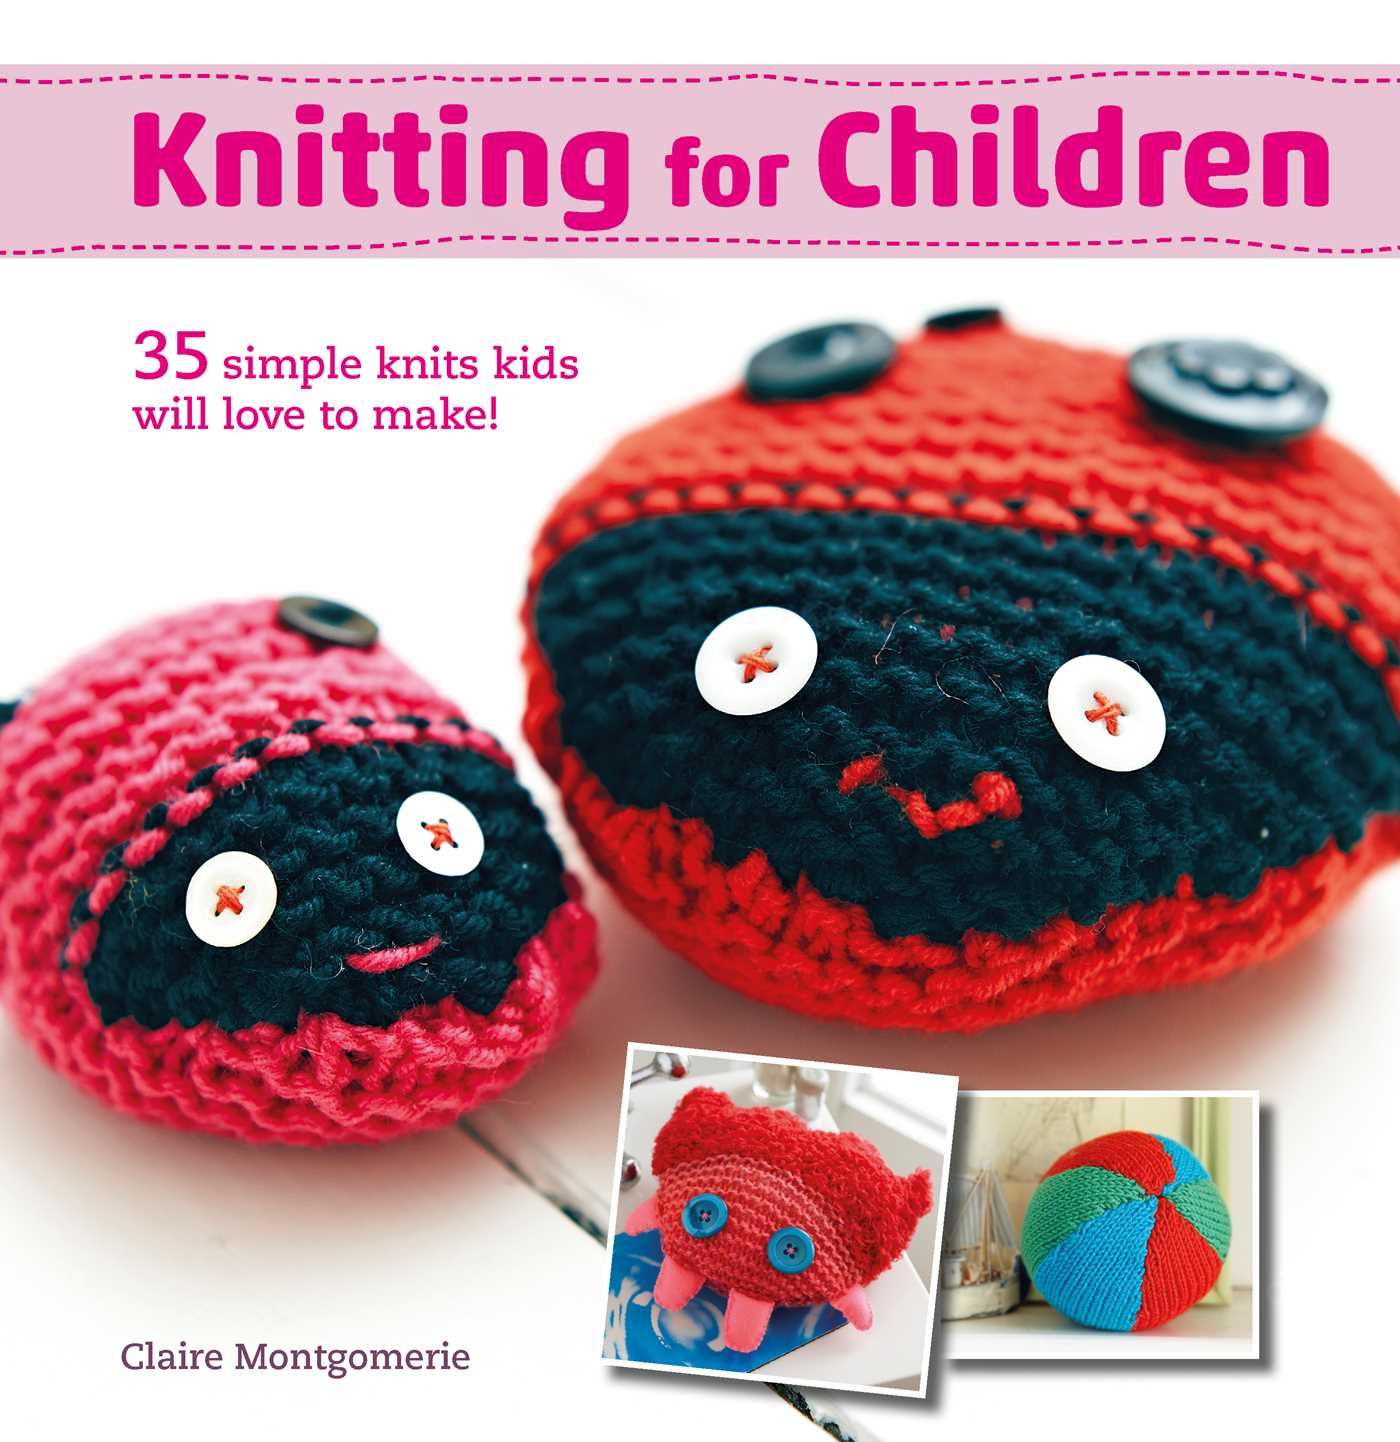 Knitting for children 9781782494614 hr